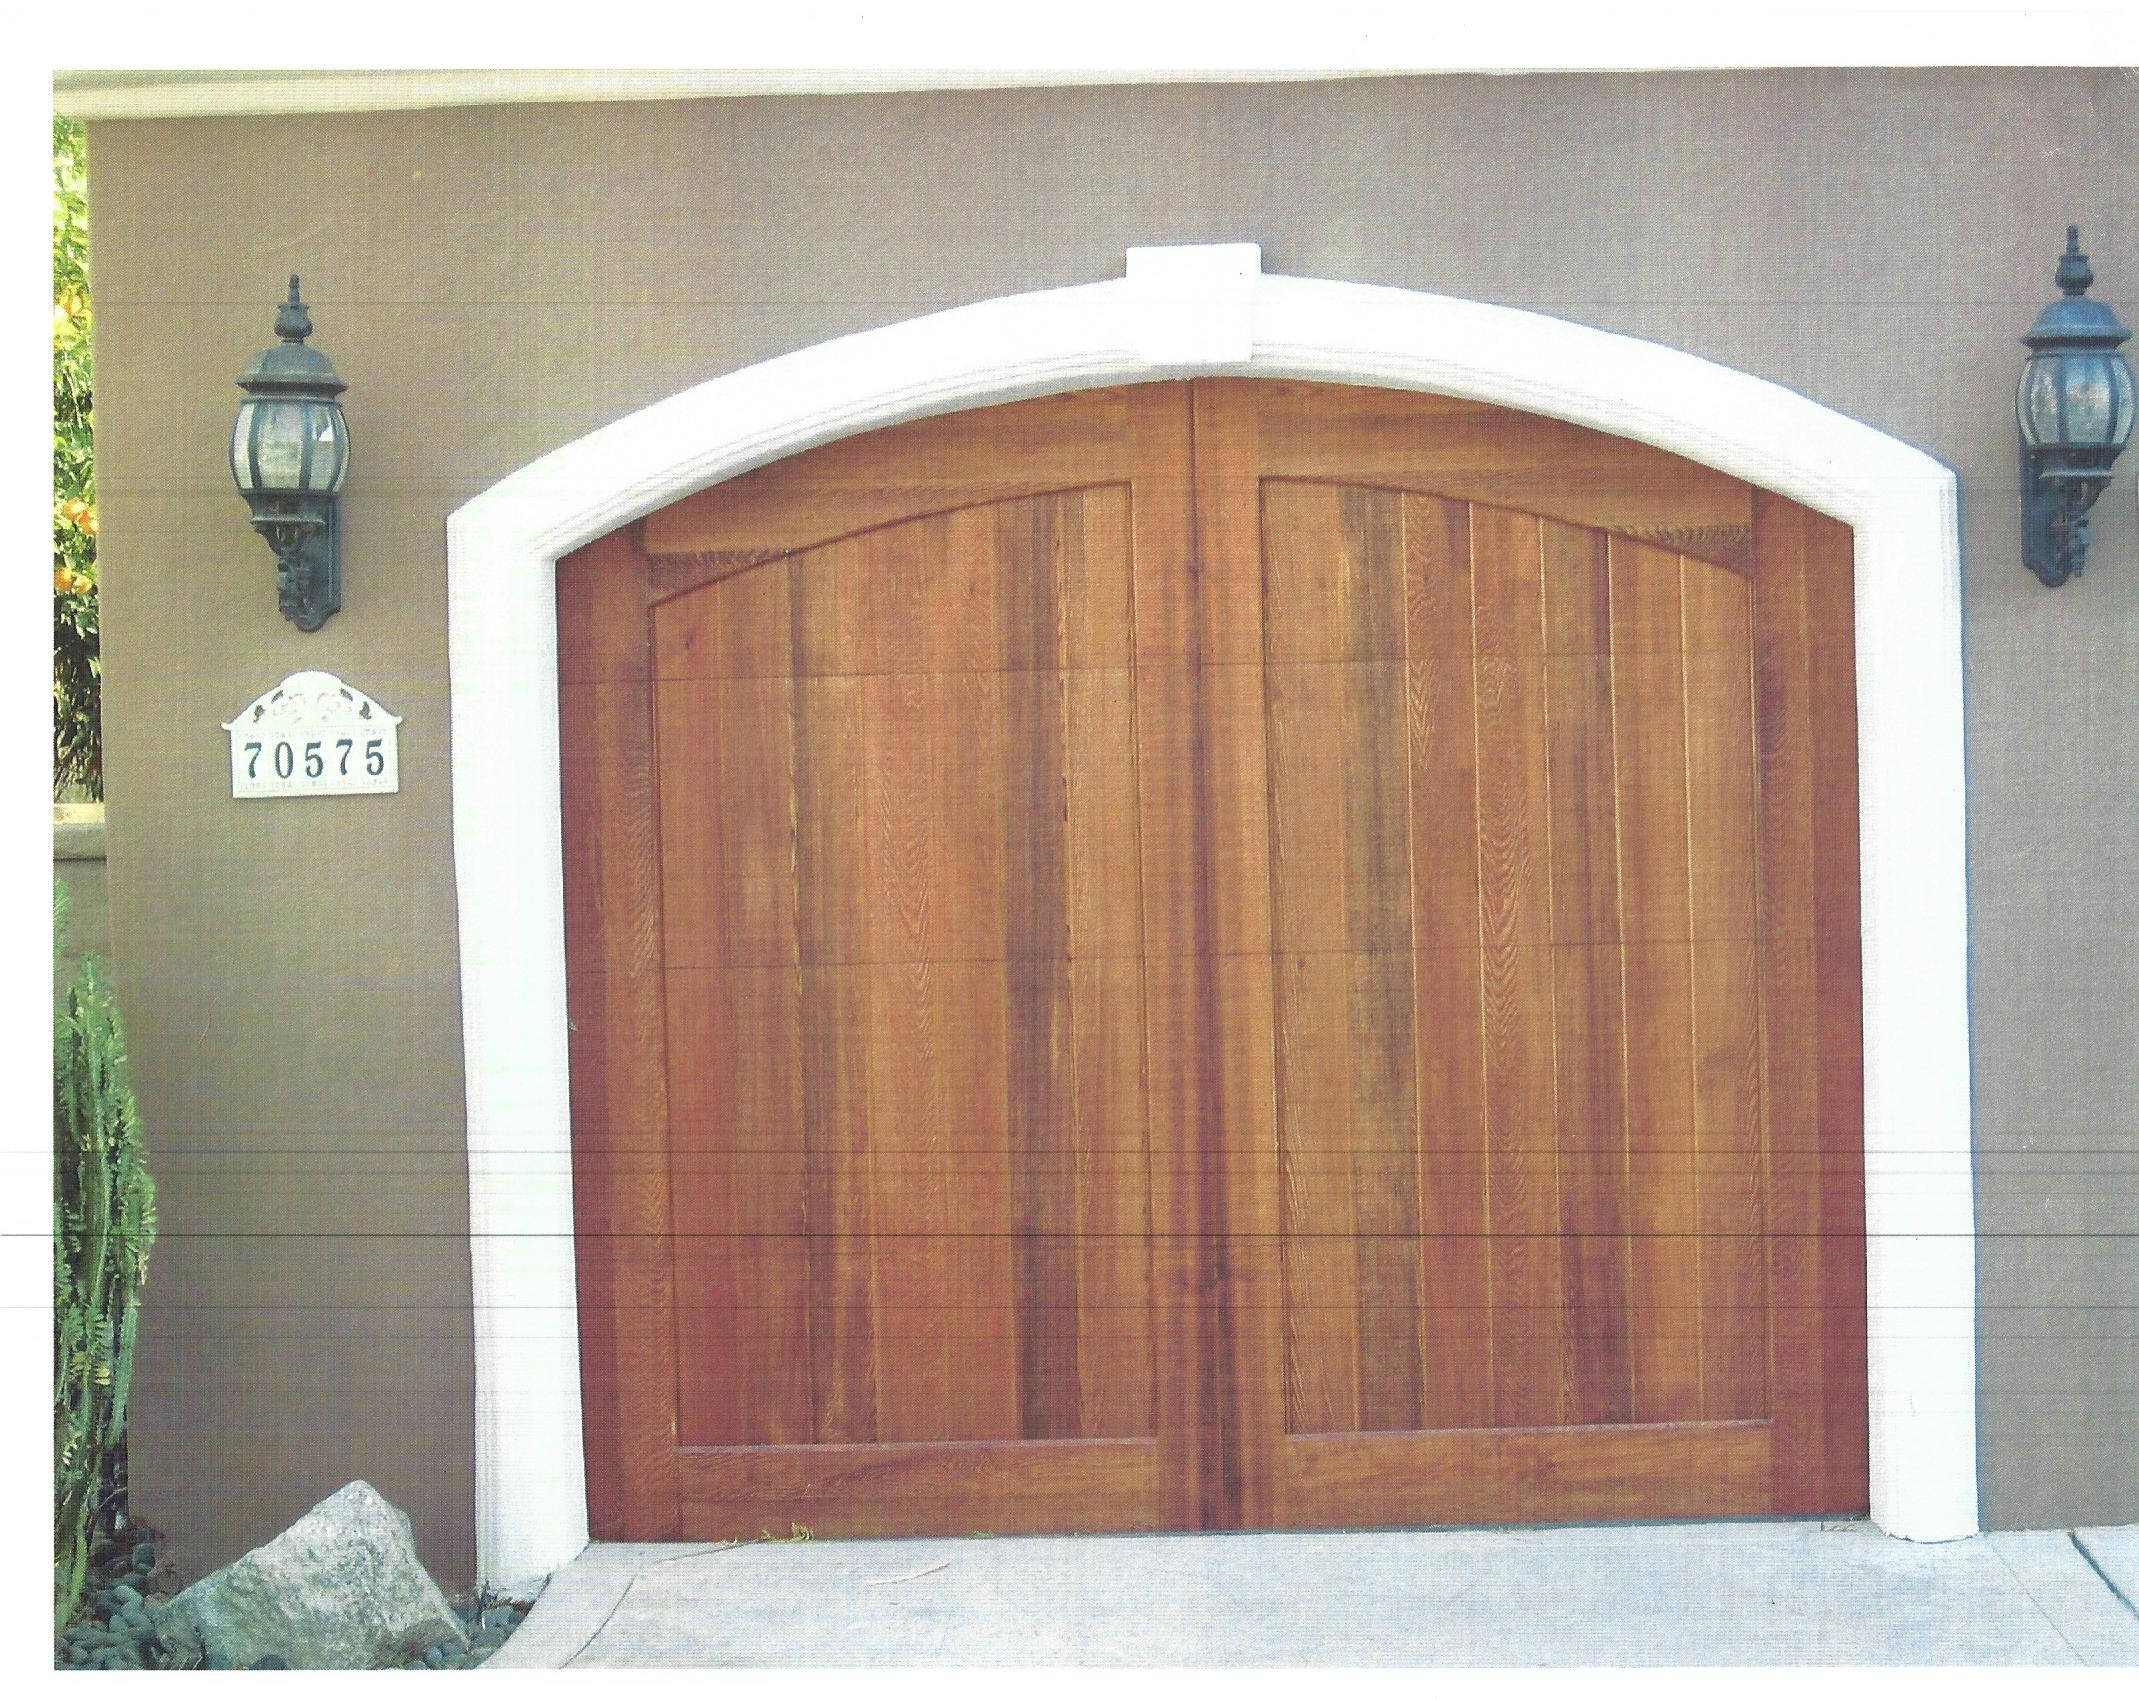 Arched Design On Arched Opening Garage Doors And Gates